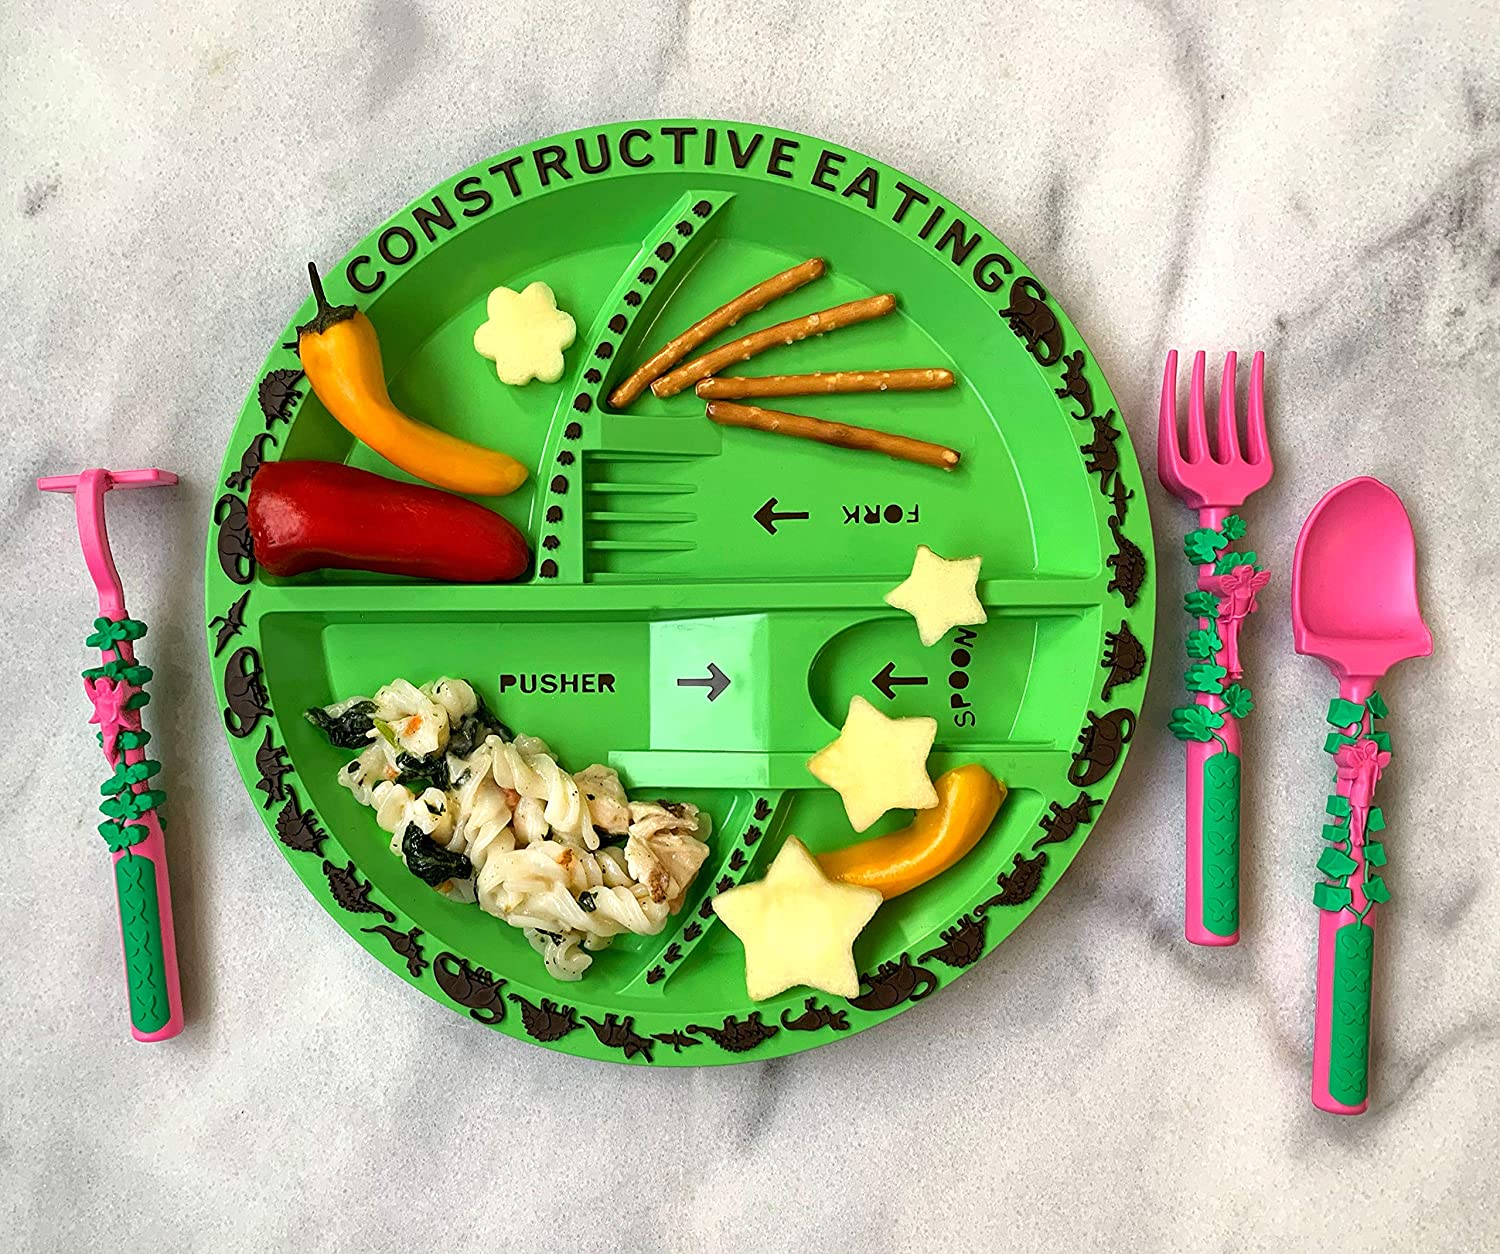 Constructive Eating Combo with Set of 3 Garden Fairy Utensils and Dinosaur Plate for Toddlers, Infants, Babies and Kids - Flatware Set is Made in The USA Using Materials Tested for Safety